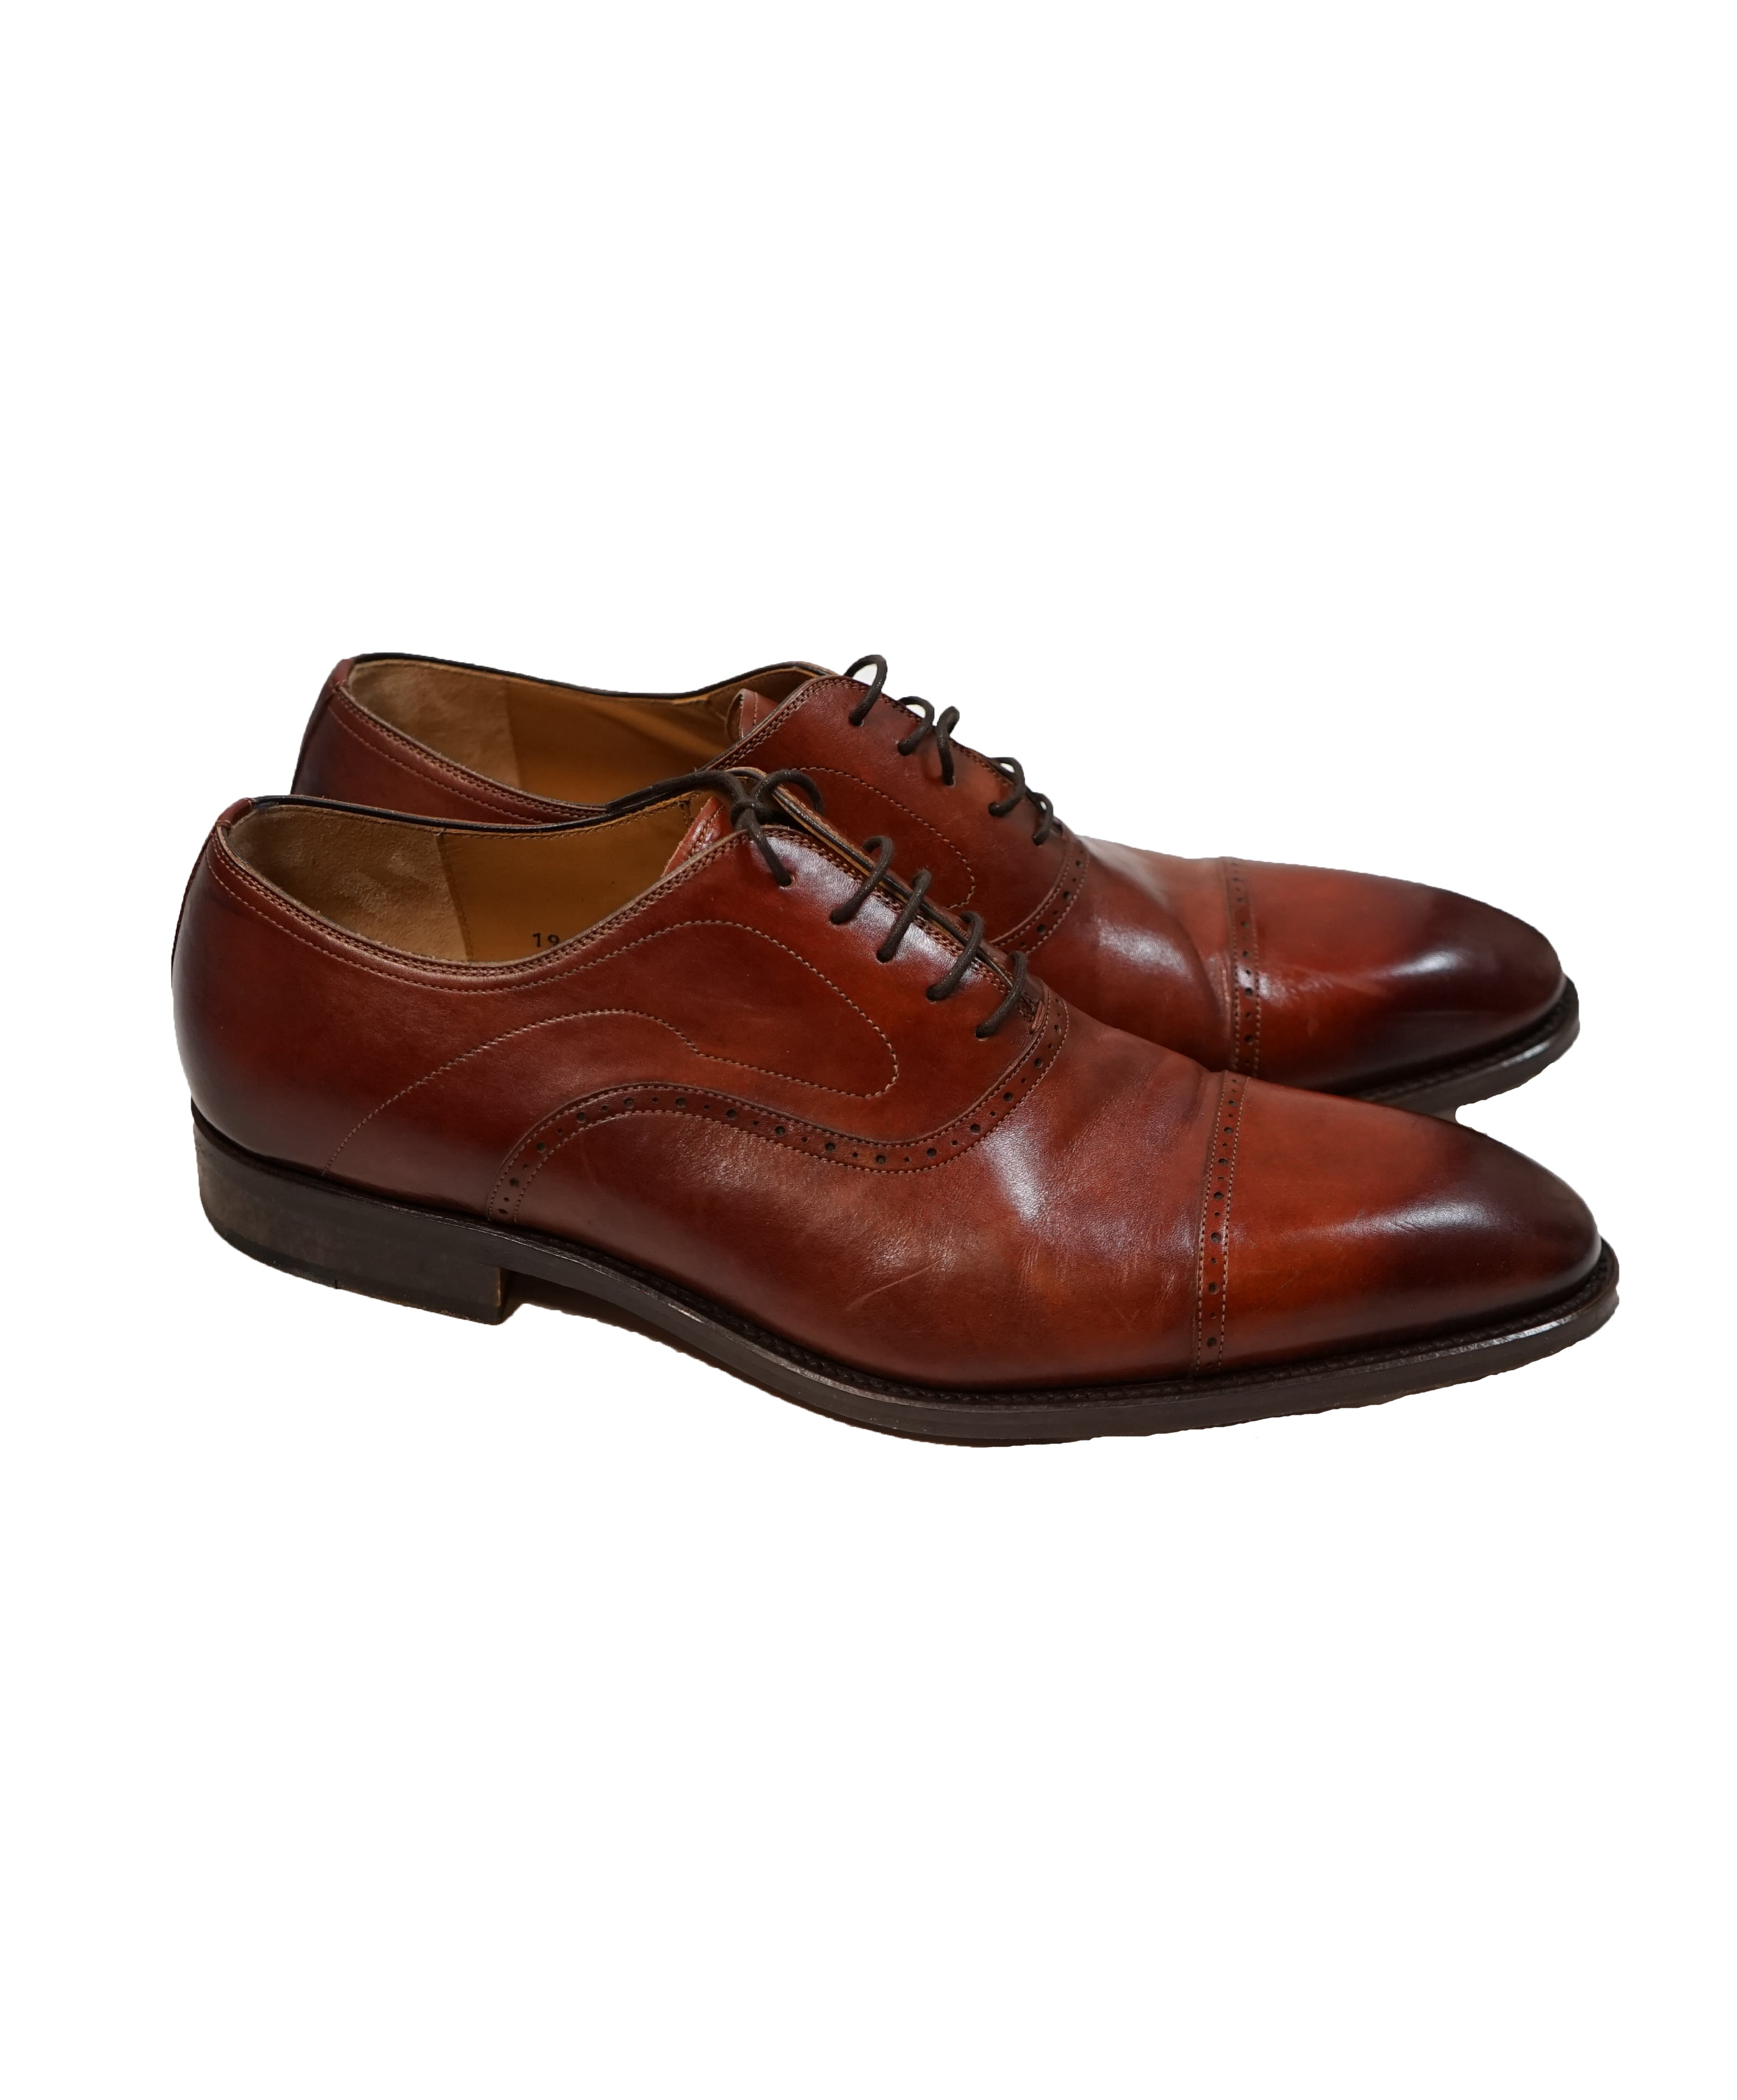 MAGNANNI For SAKS FIFTH AVENUE- Brown Cap-Toe Oxfords - 12